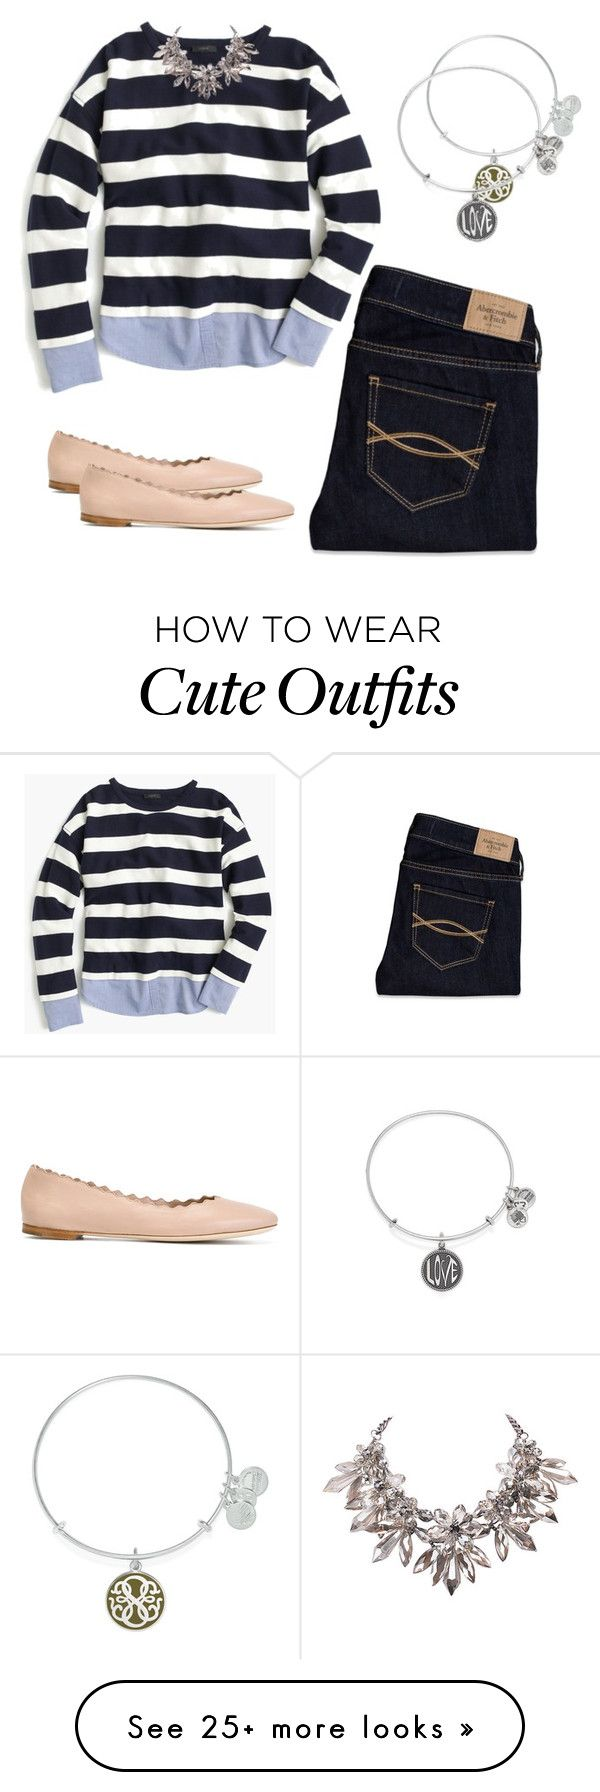 """""""cute school outfit"""" by pinkmuna on Polyvore featuring Abercrombie & Fitch, J.Crew, Alex and Ani and Chloé"""